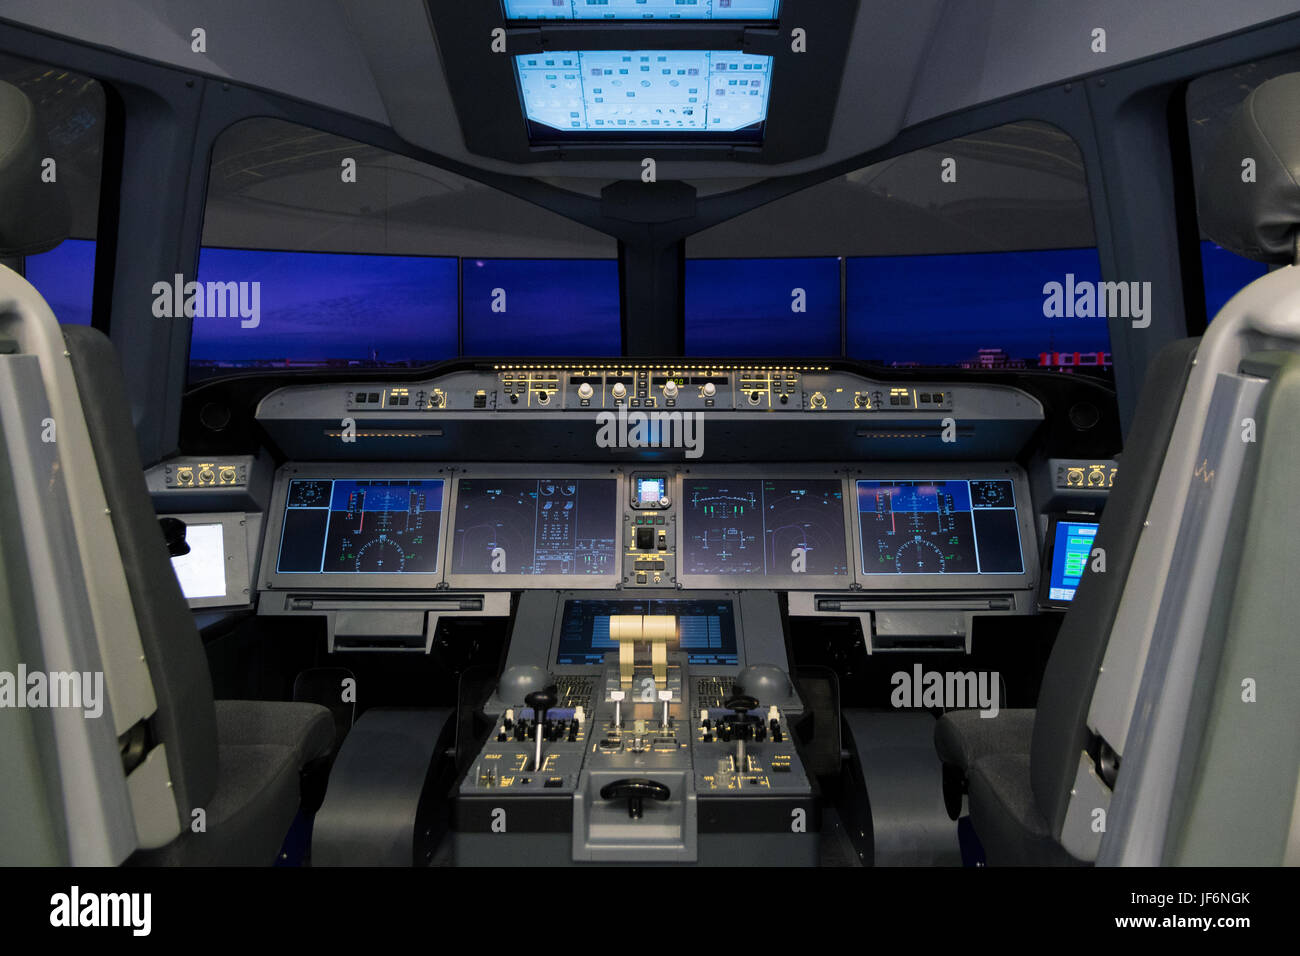 PARIS, FRANCE - JUN 23, 2017: Irkut MC-21 airliner flight simulator at the Paris Air Show 2017 Stock Photo